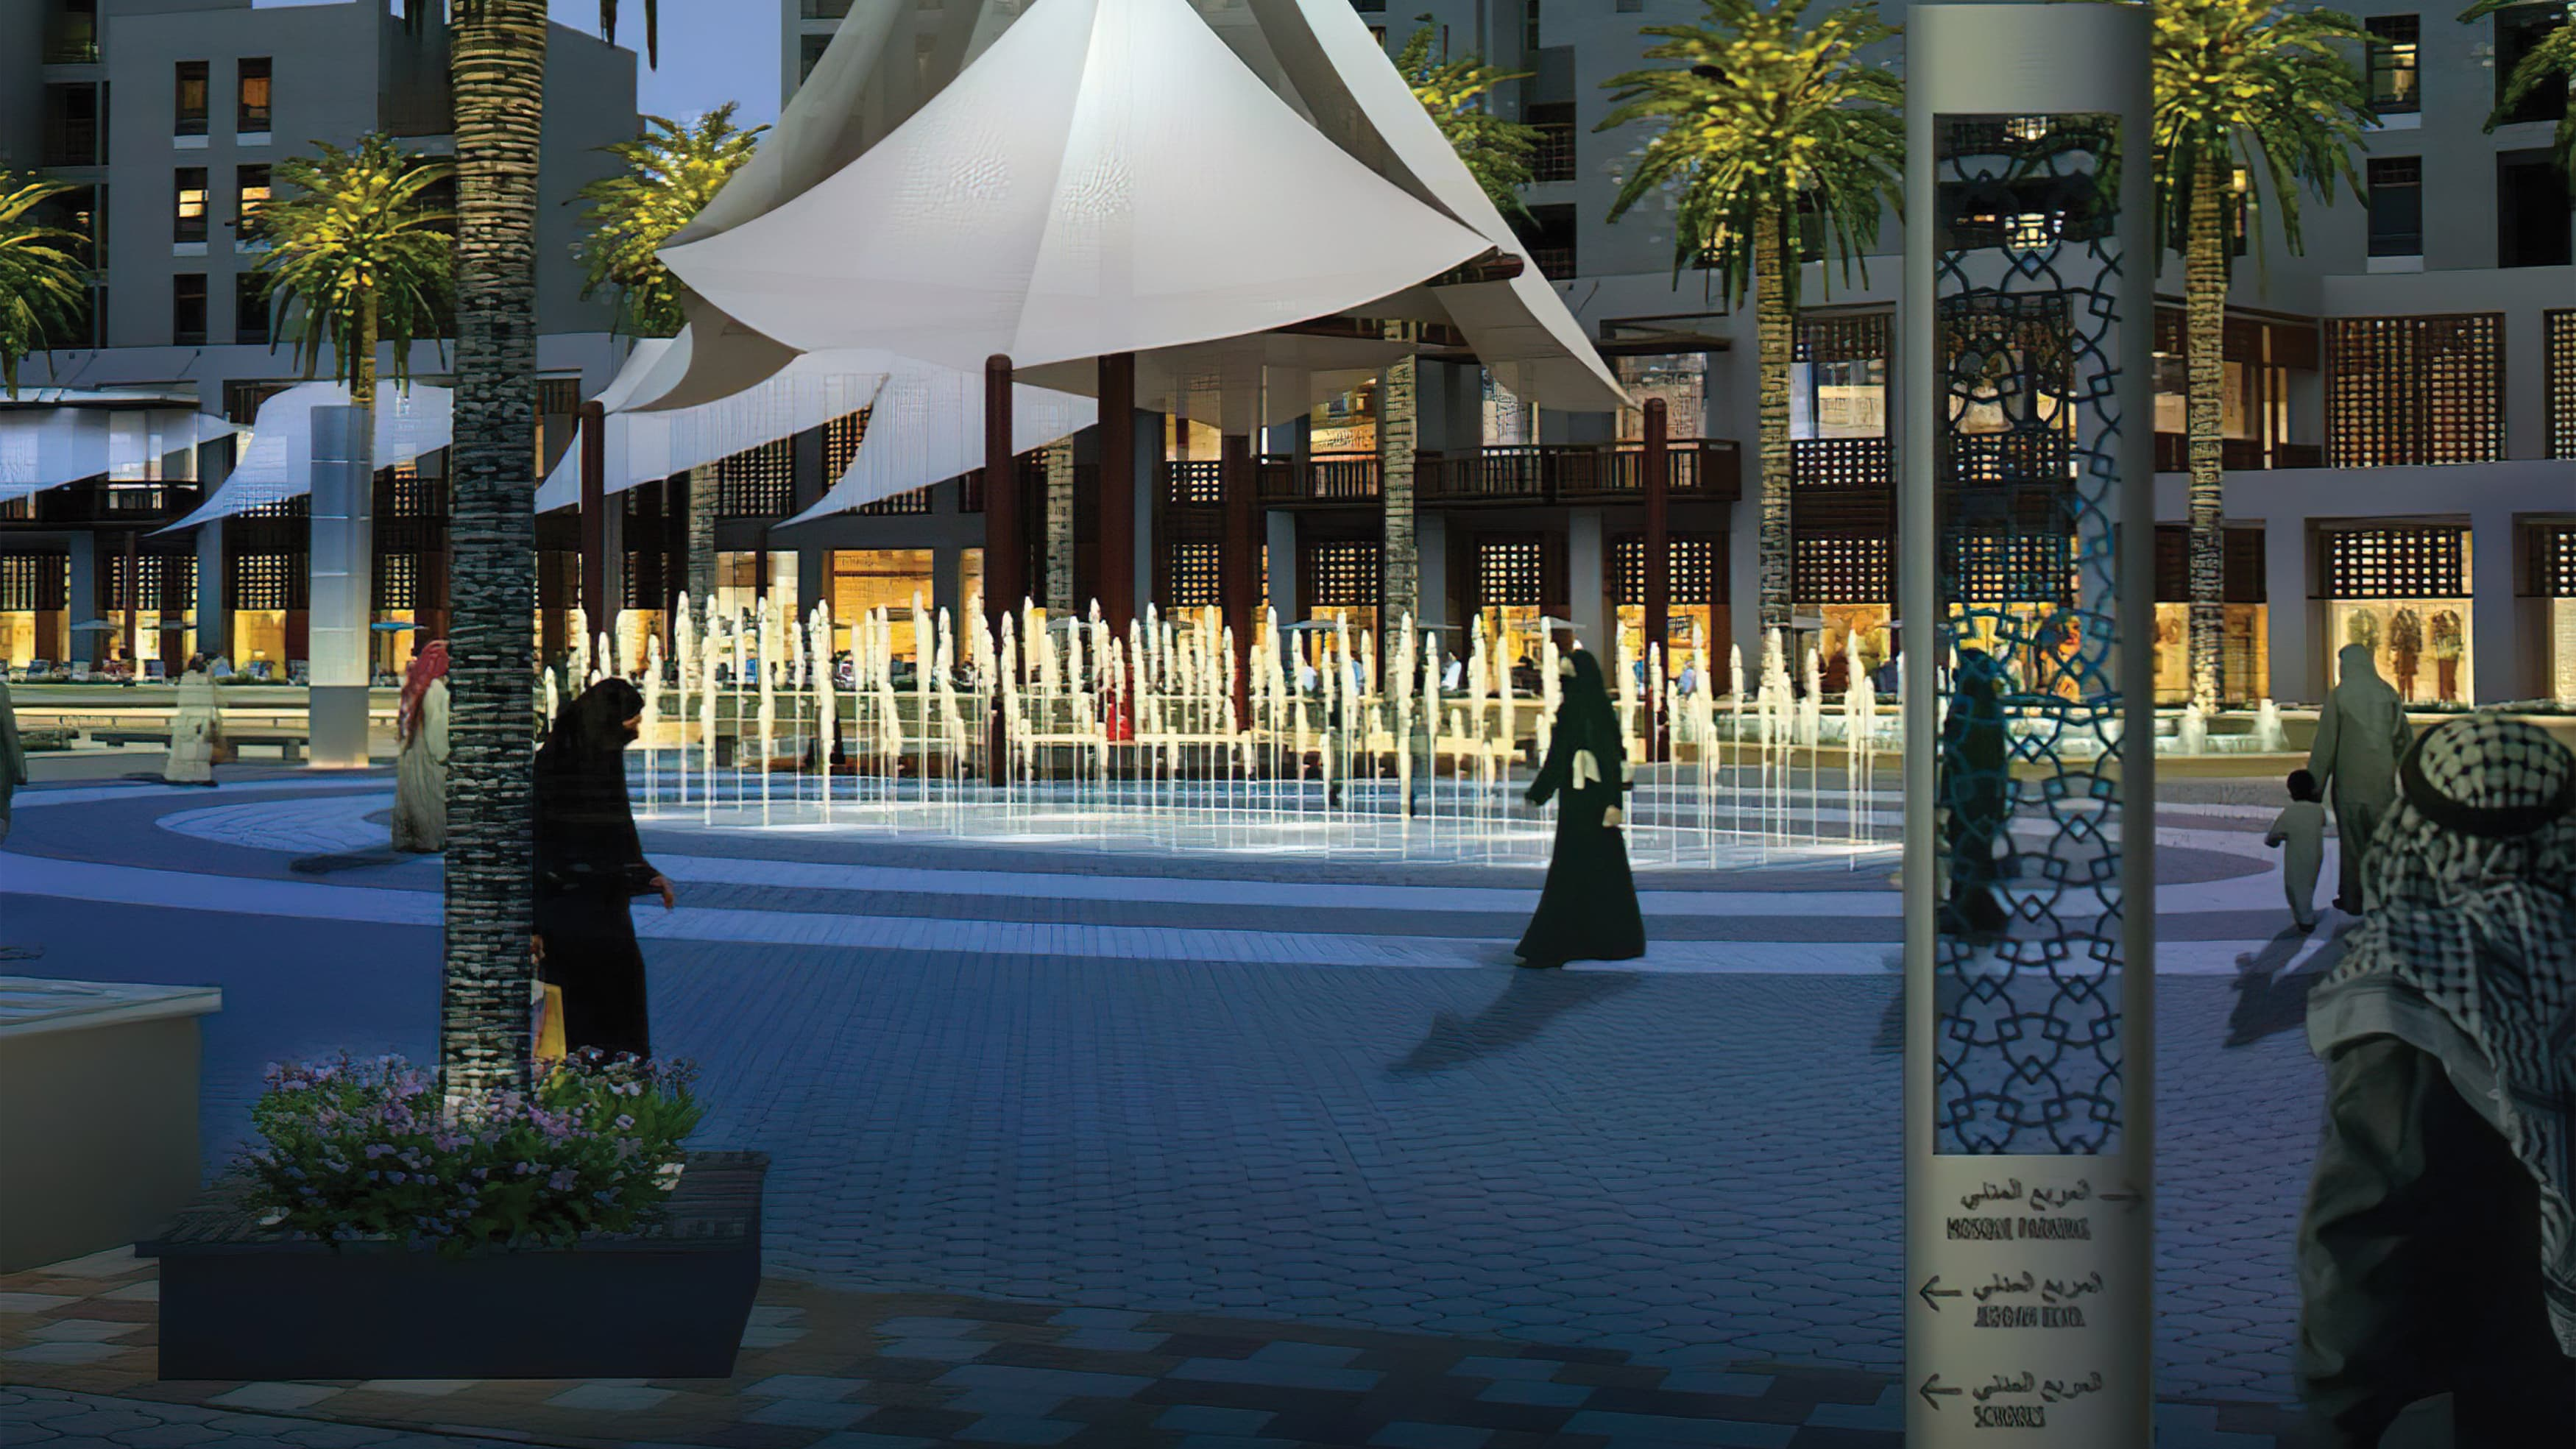 A rendering depicting a fountain and pedestrian directional signage.